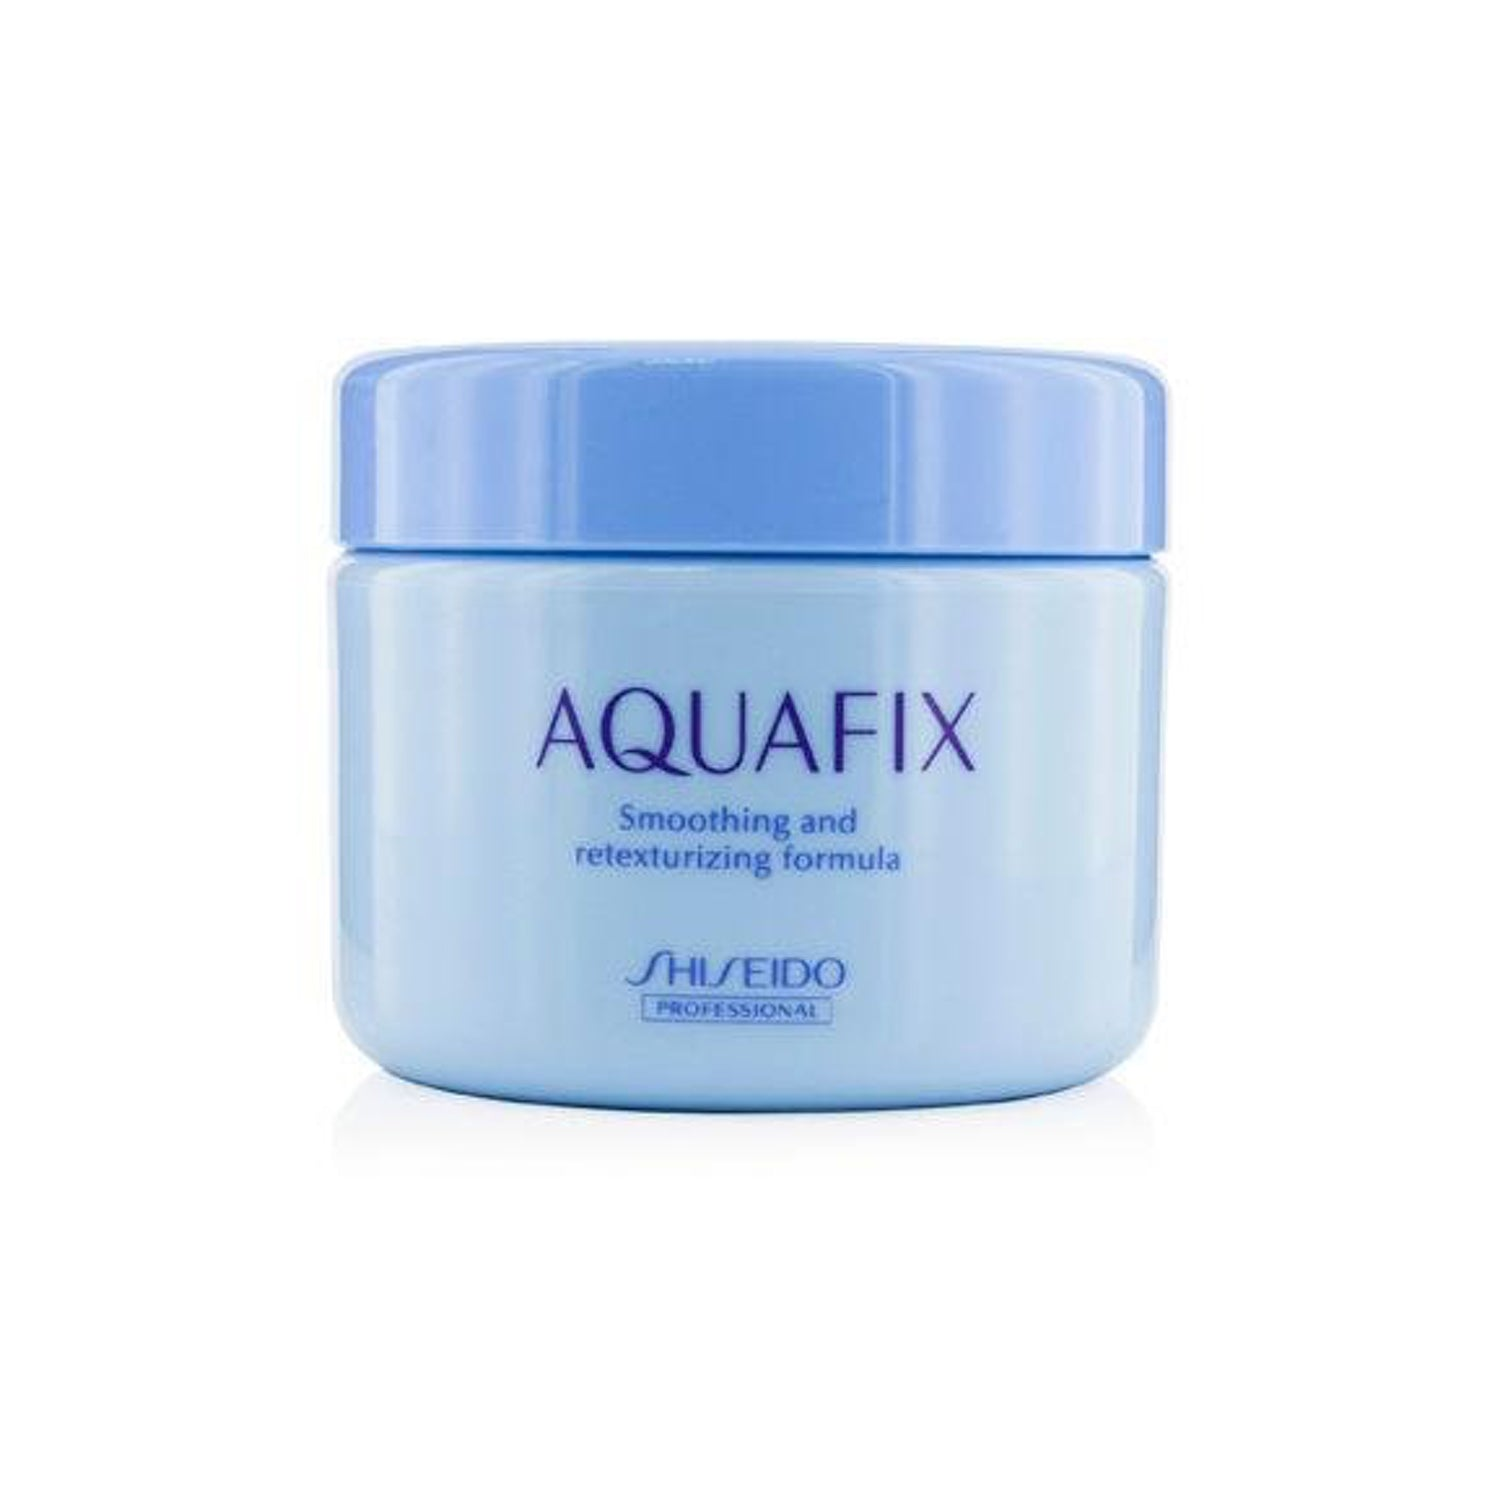 Shiseido Aquafix Smoothing and Retexturizing Formula 300g/10.2oz